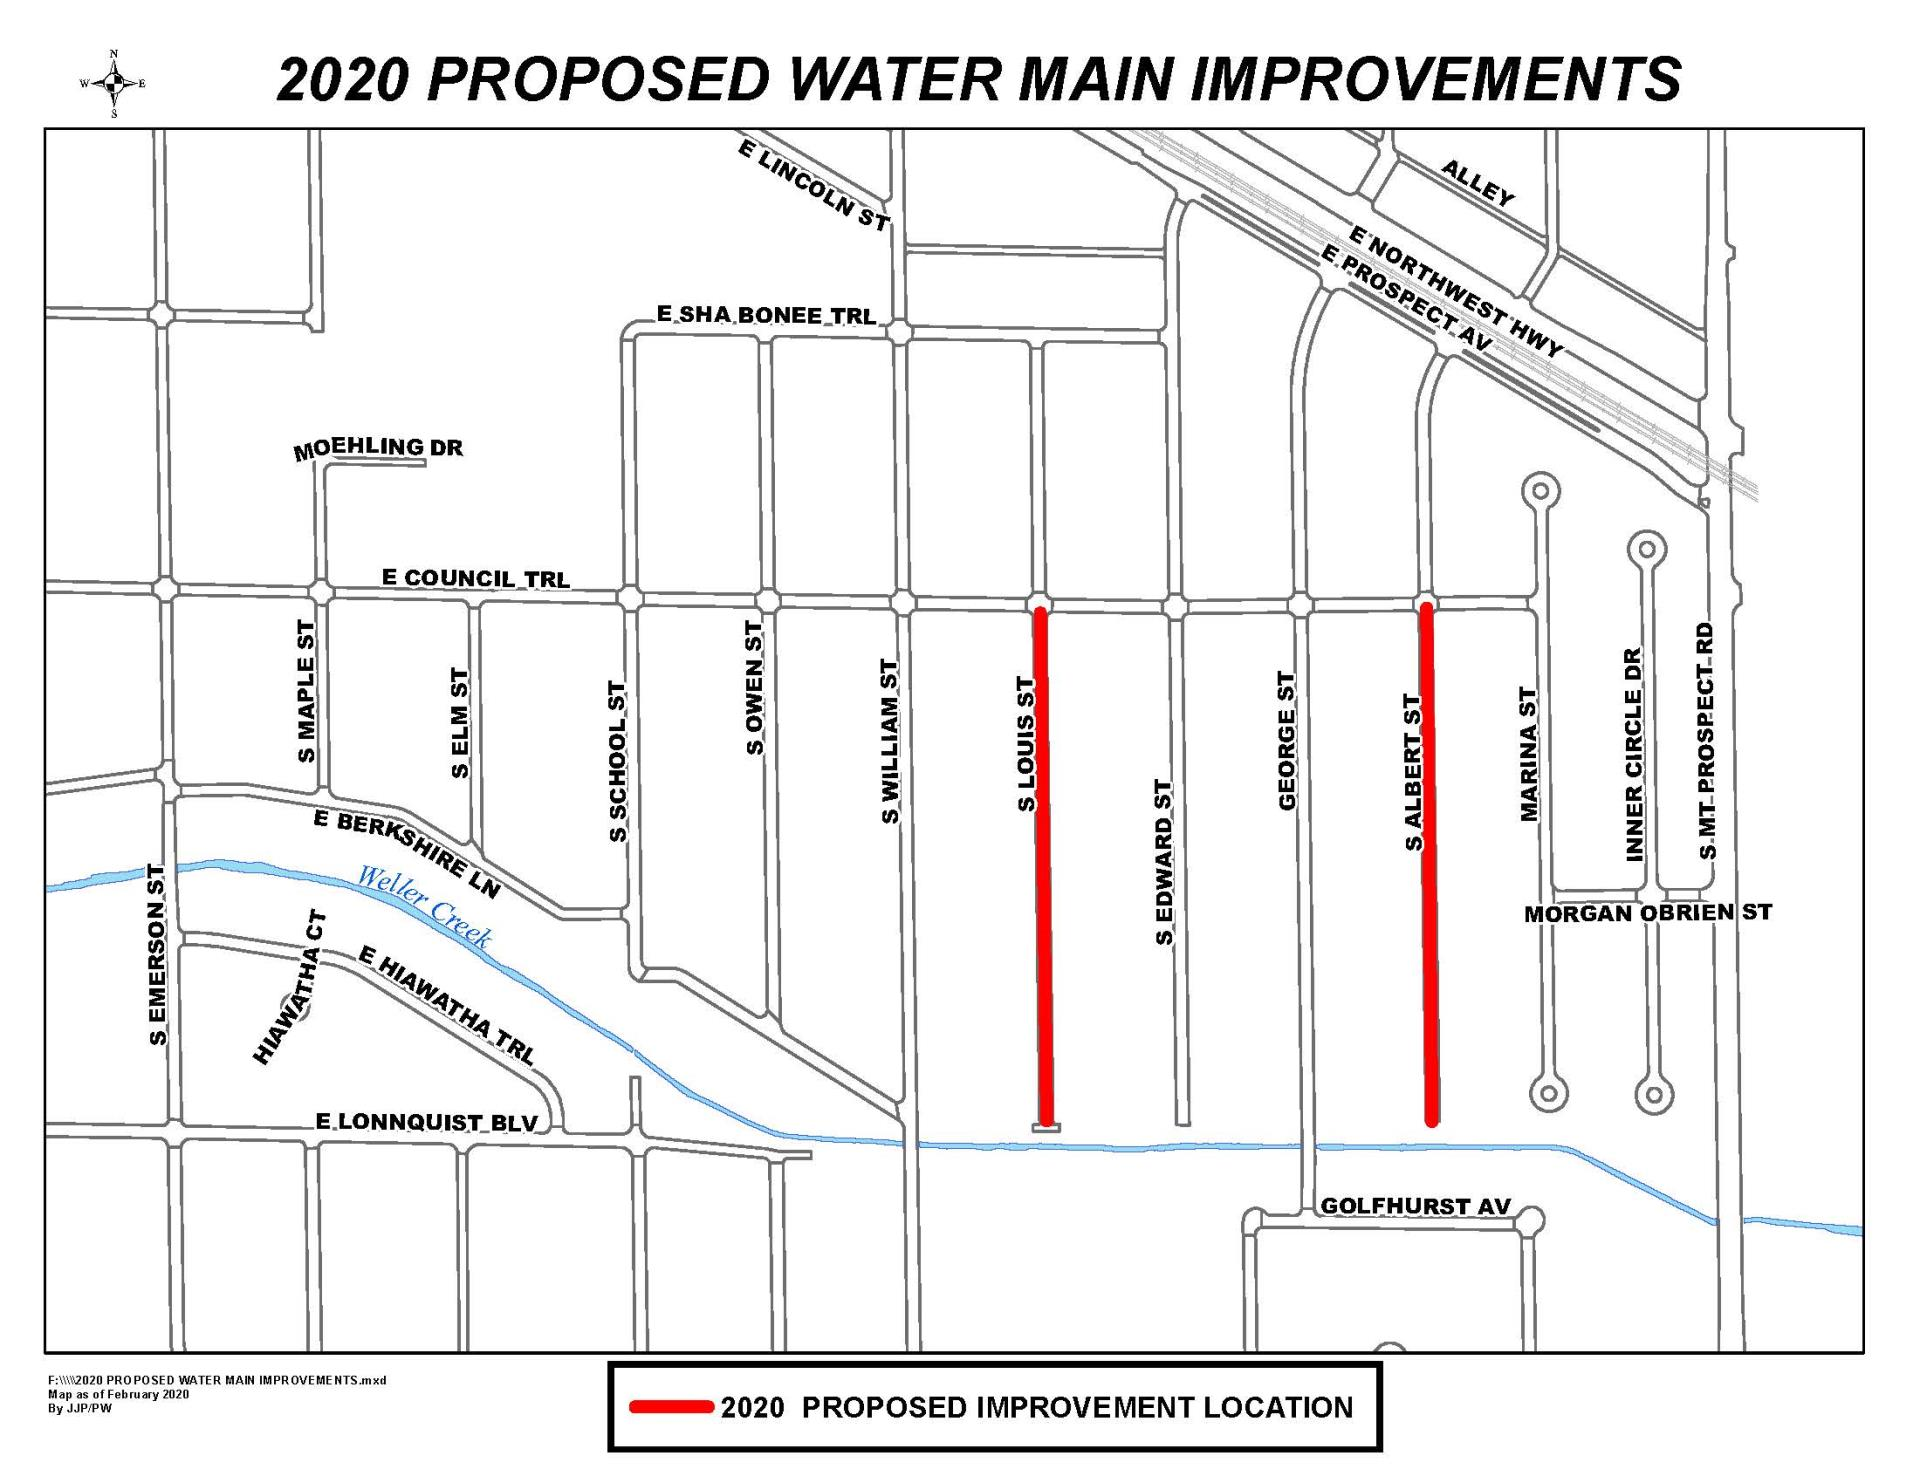 2020 PROPOSED WATER MAIN IMPROVEMENTS